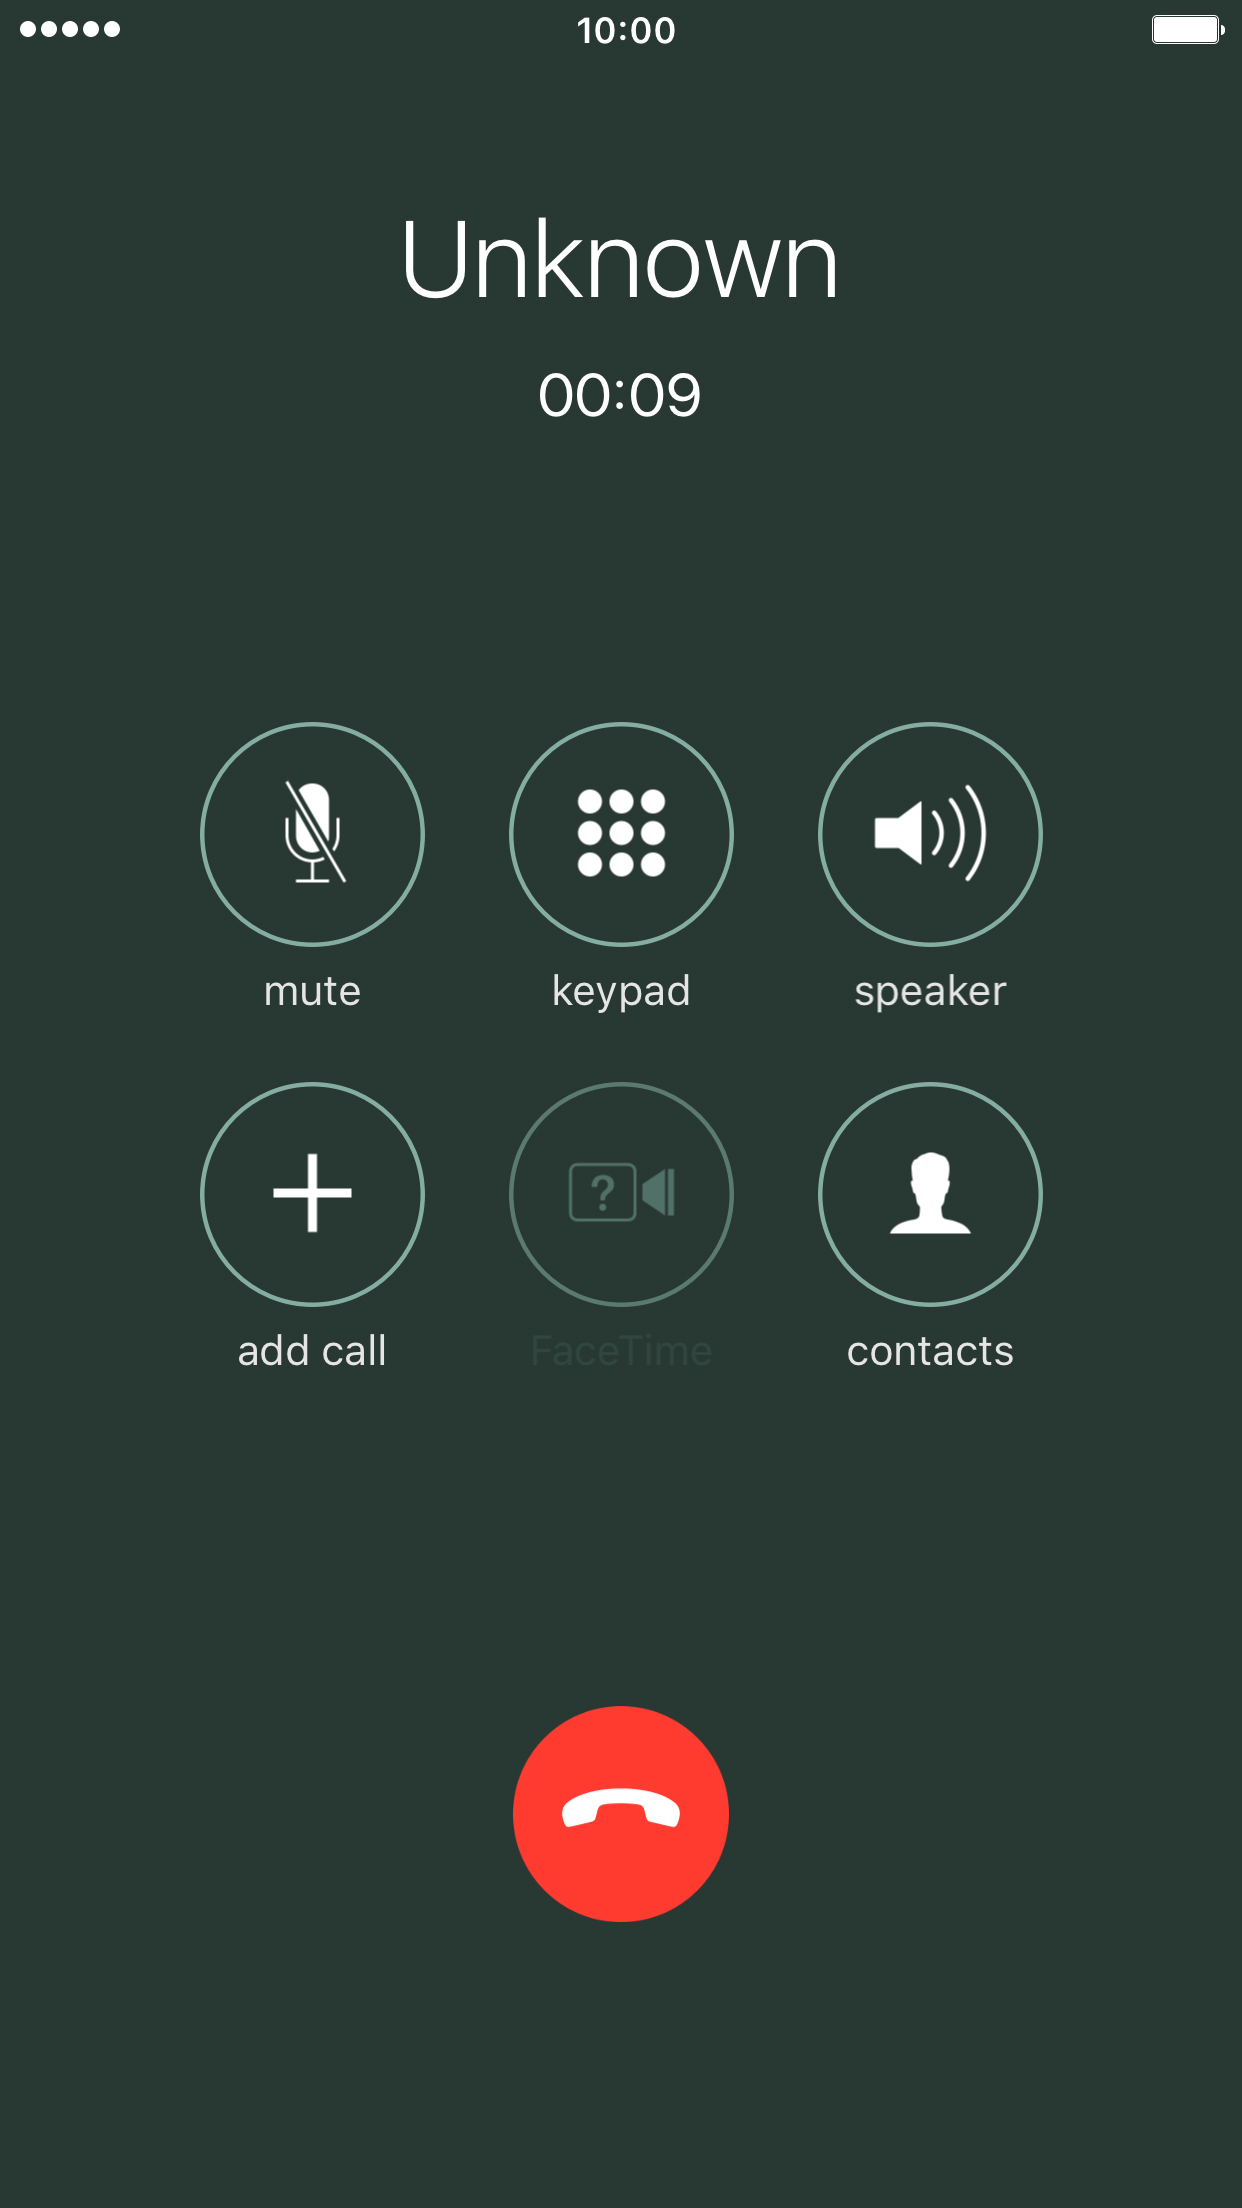 how to get telstra wi-fi call on my mobile